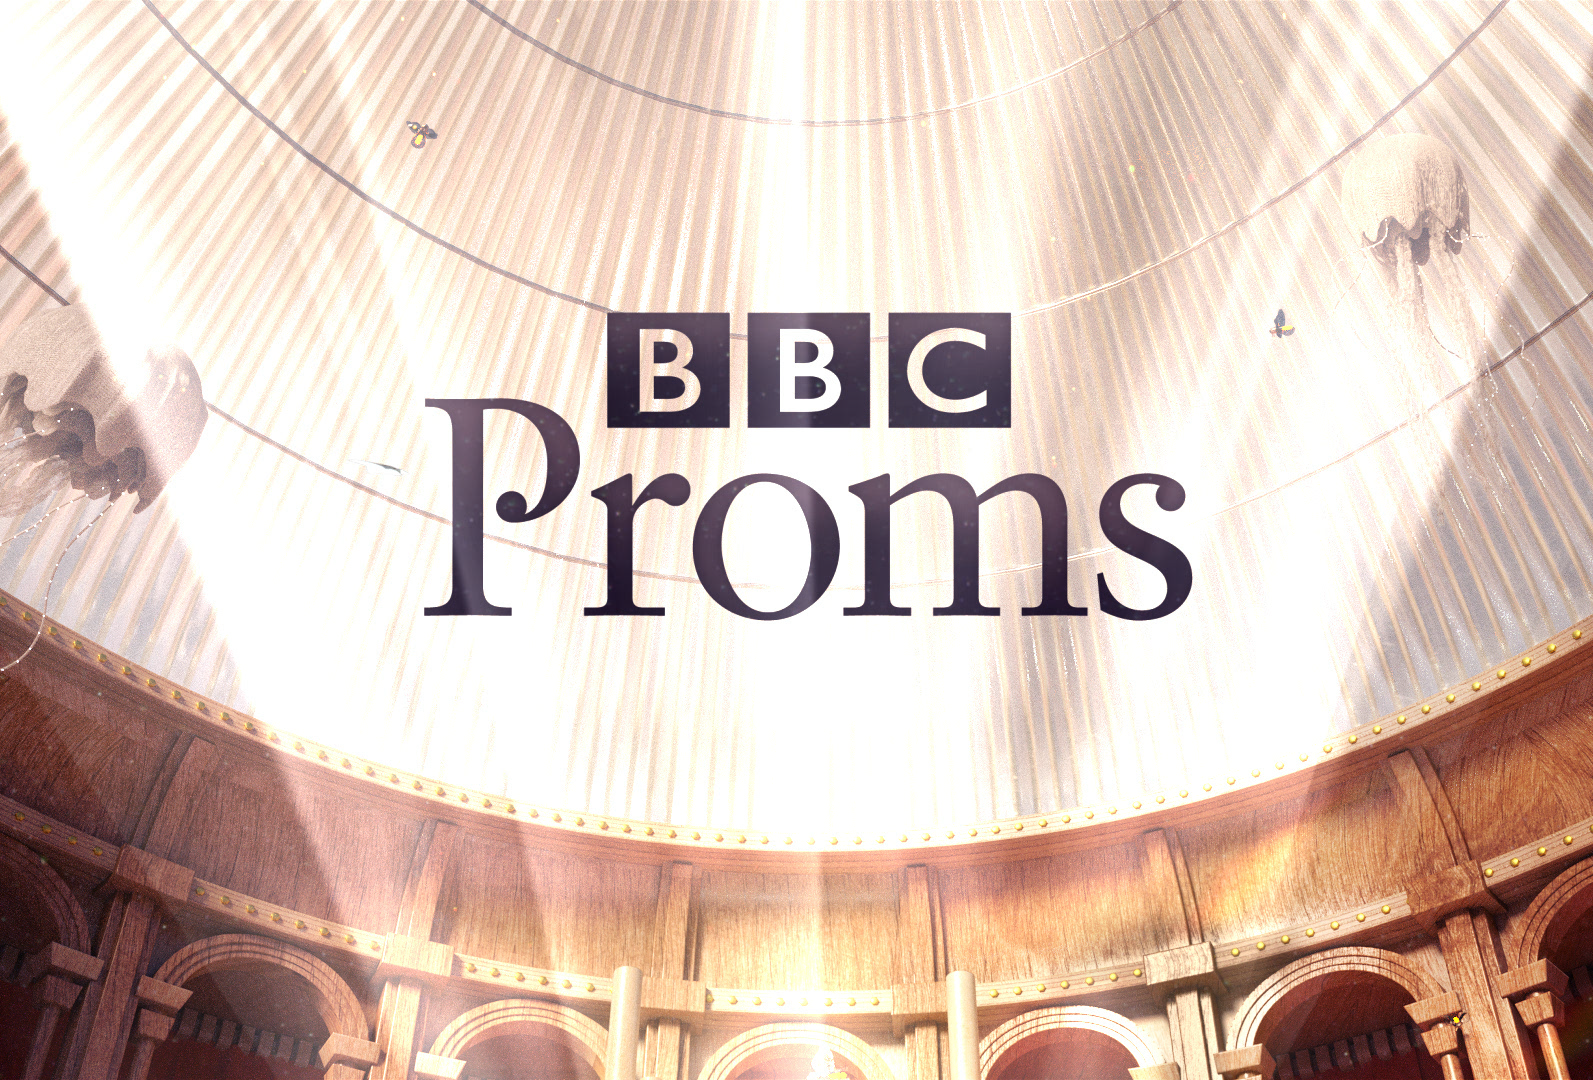 BBC Proms looks to attract younger audiences with brand refresh